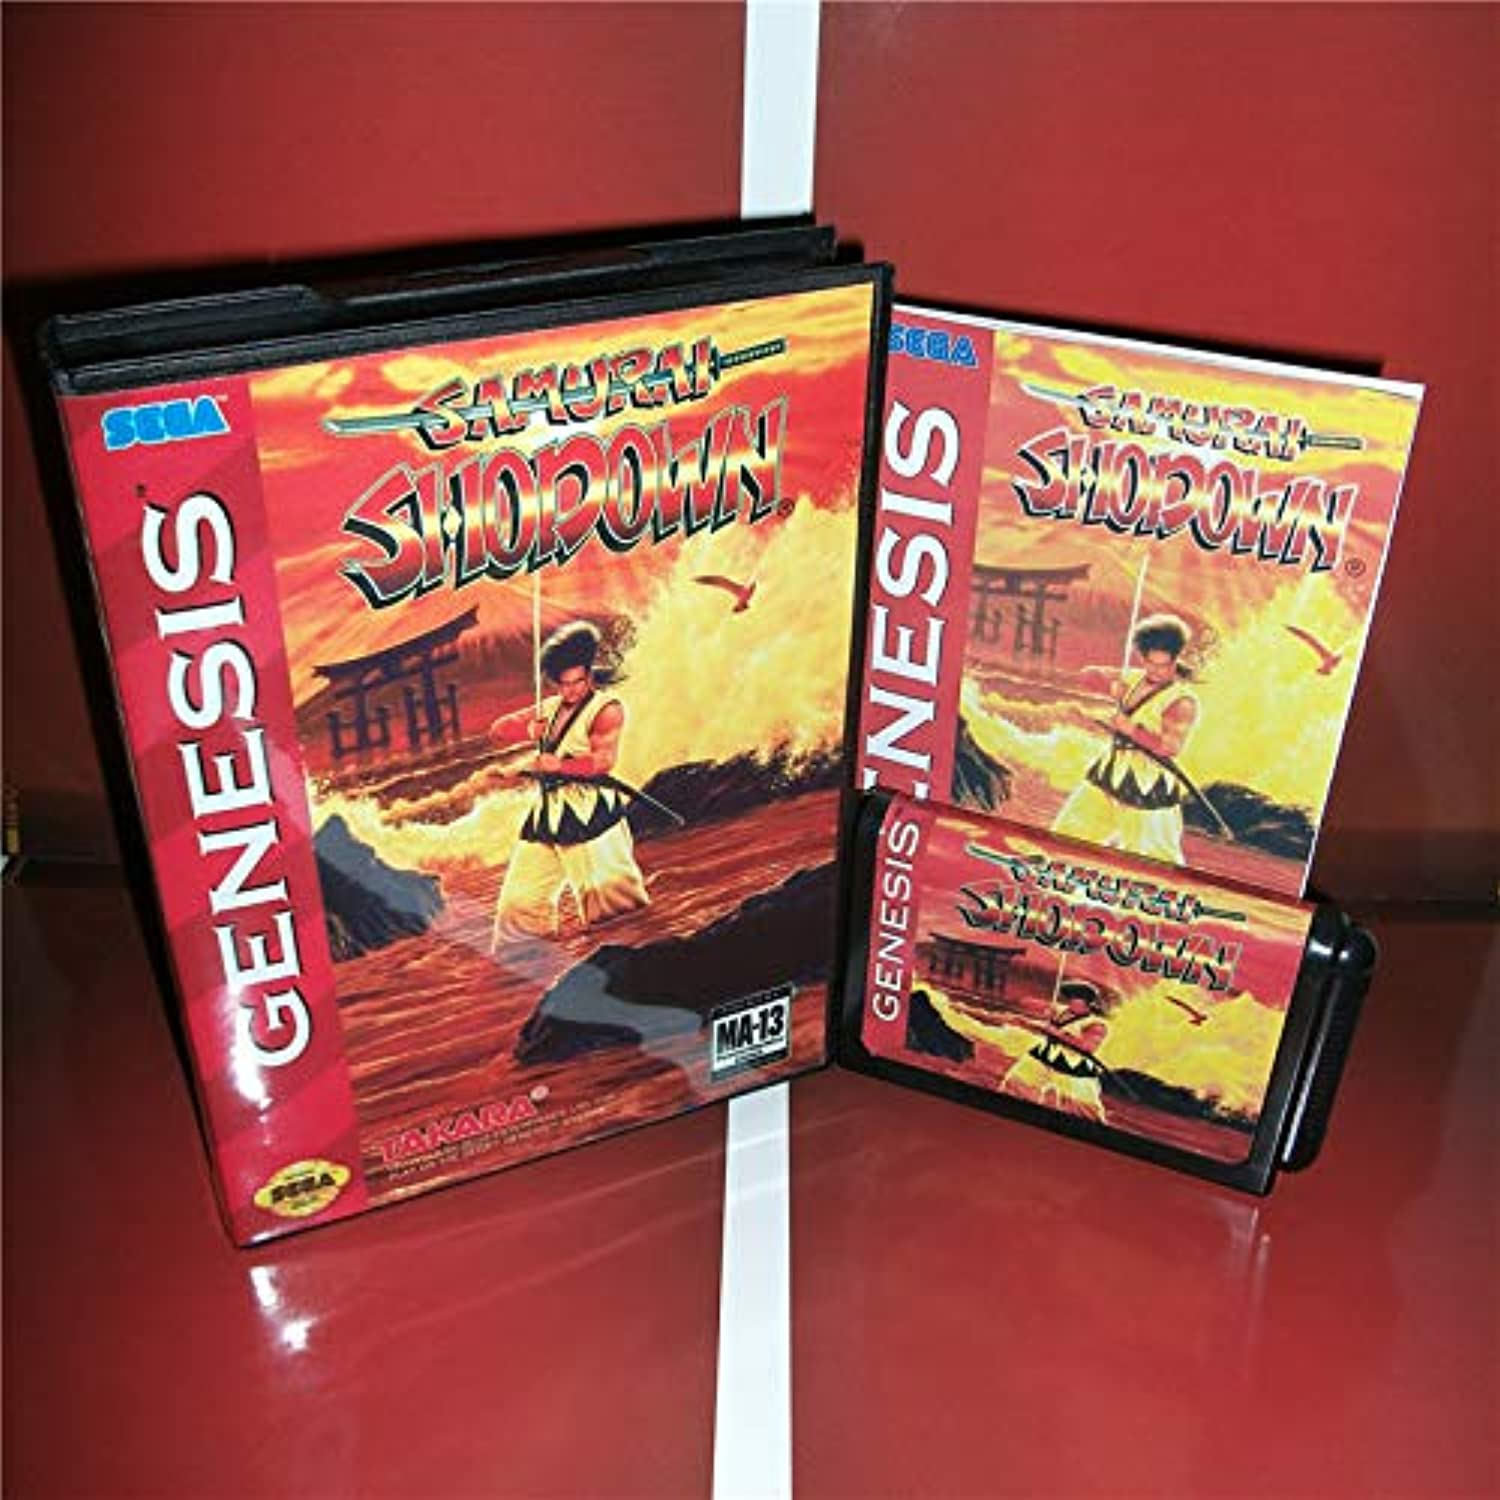 Value-Smart-ToysSamurai Shodown US Cover with Box and Manual for Sega Megadrive Genesis Video Game Console 16 bit MD Card